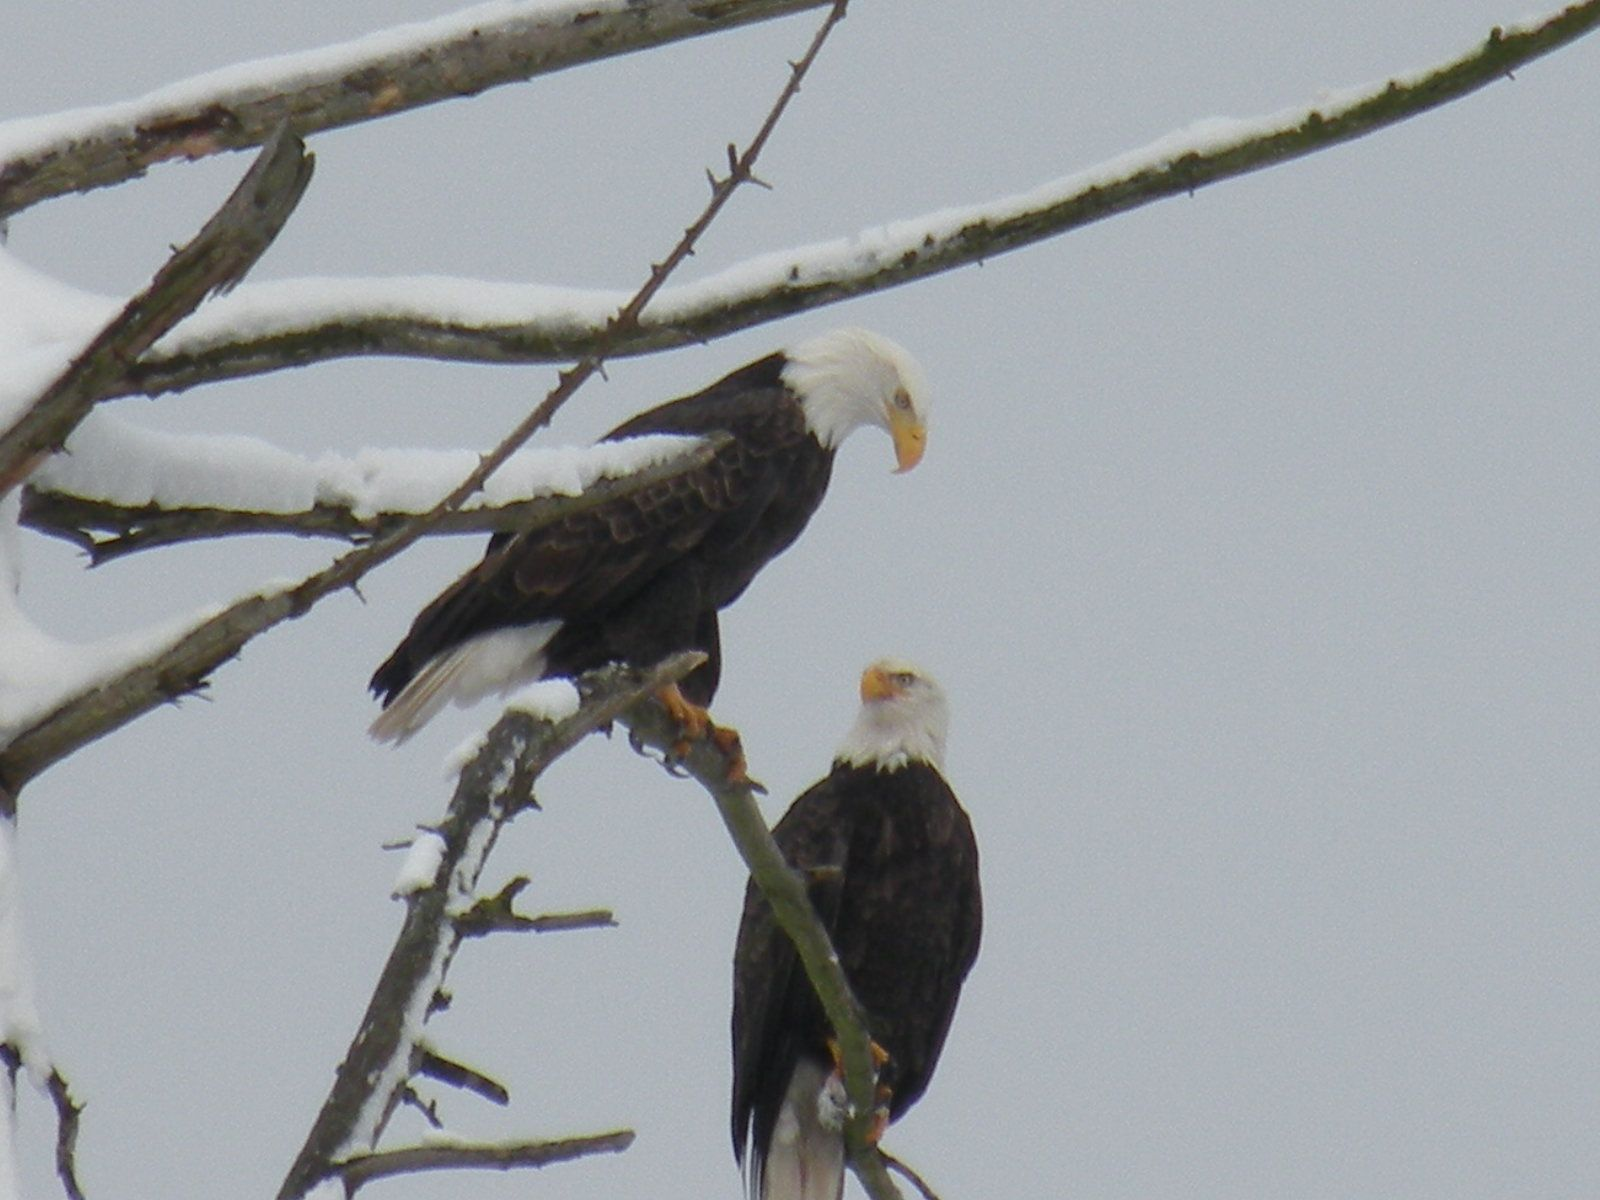 My best eagle pic